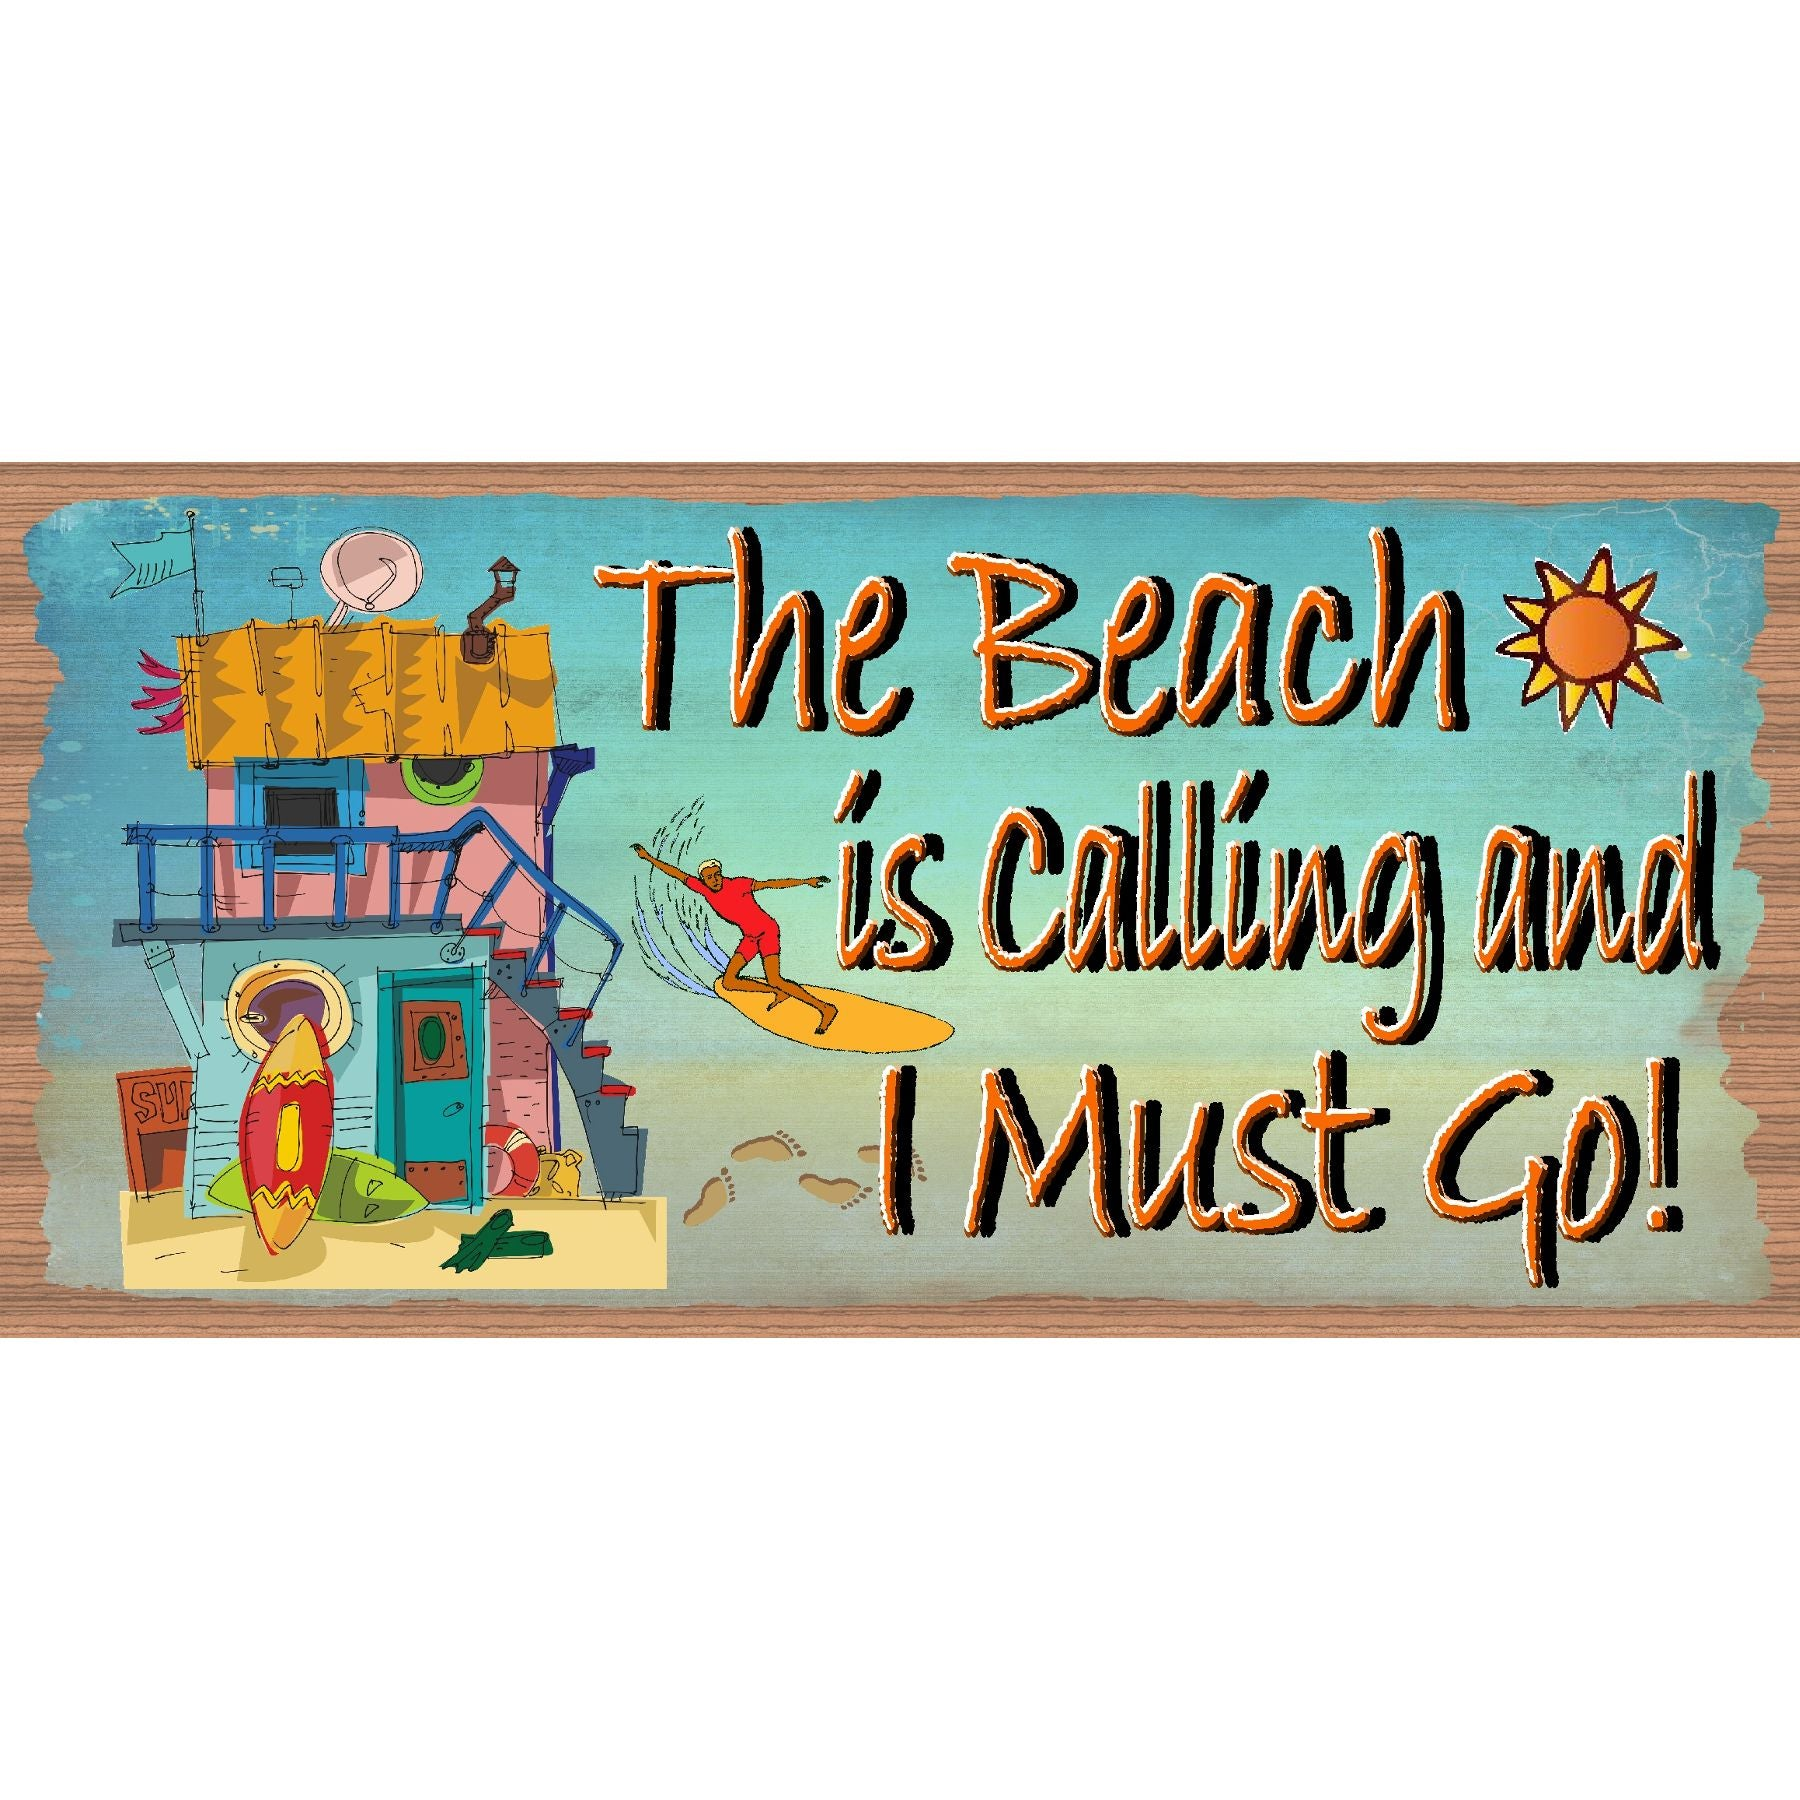 Beach Wood Signs -The Beach is Calling and I must Go GS 649 -Tropical Sign - Beach Decor